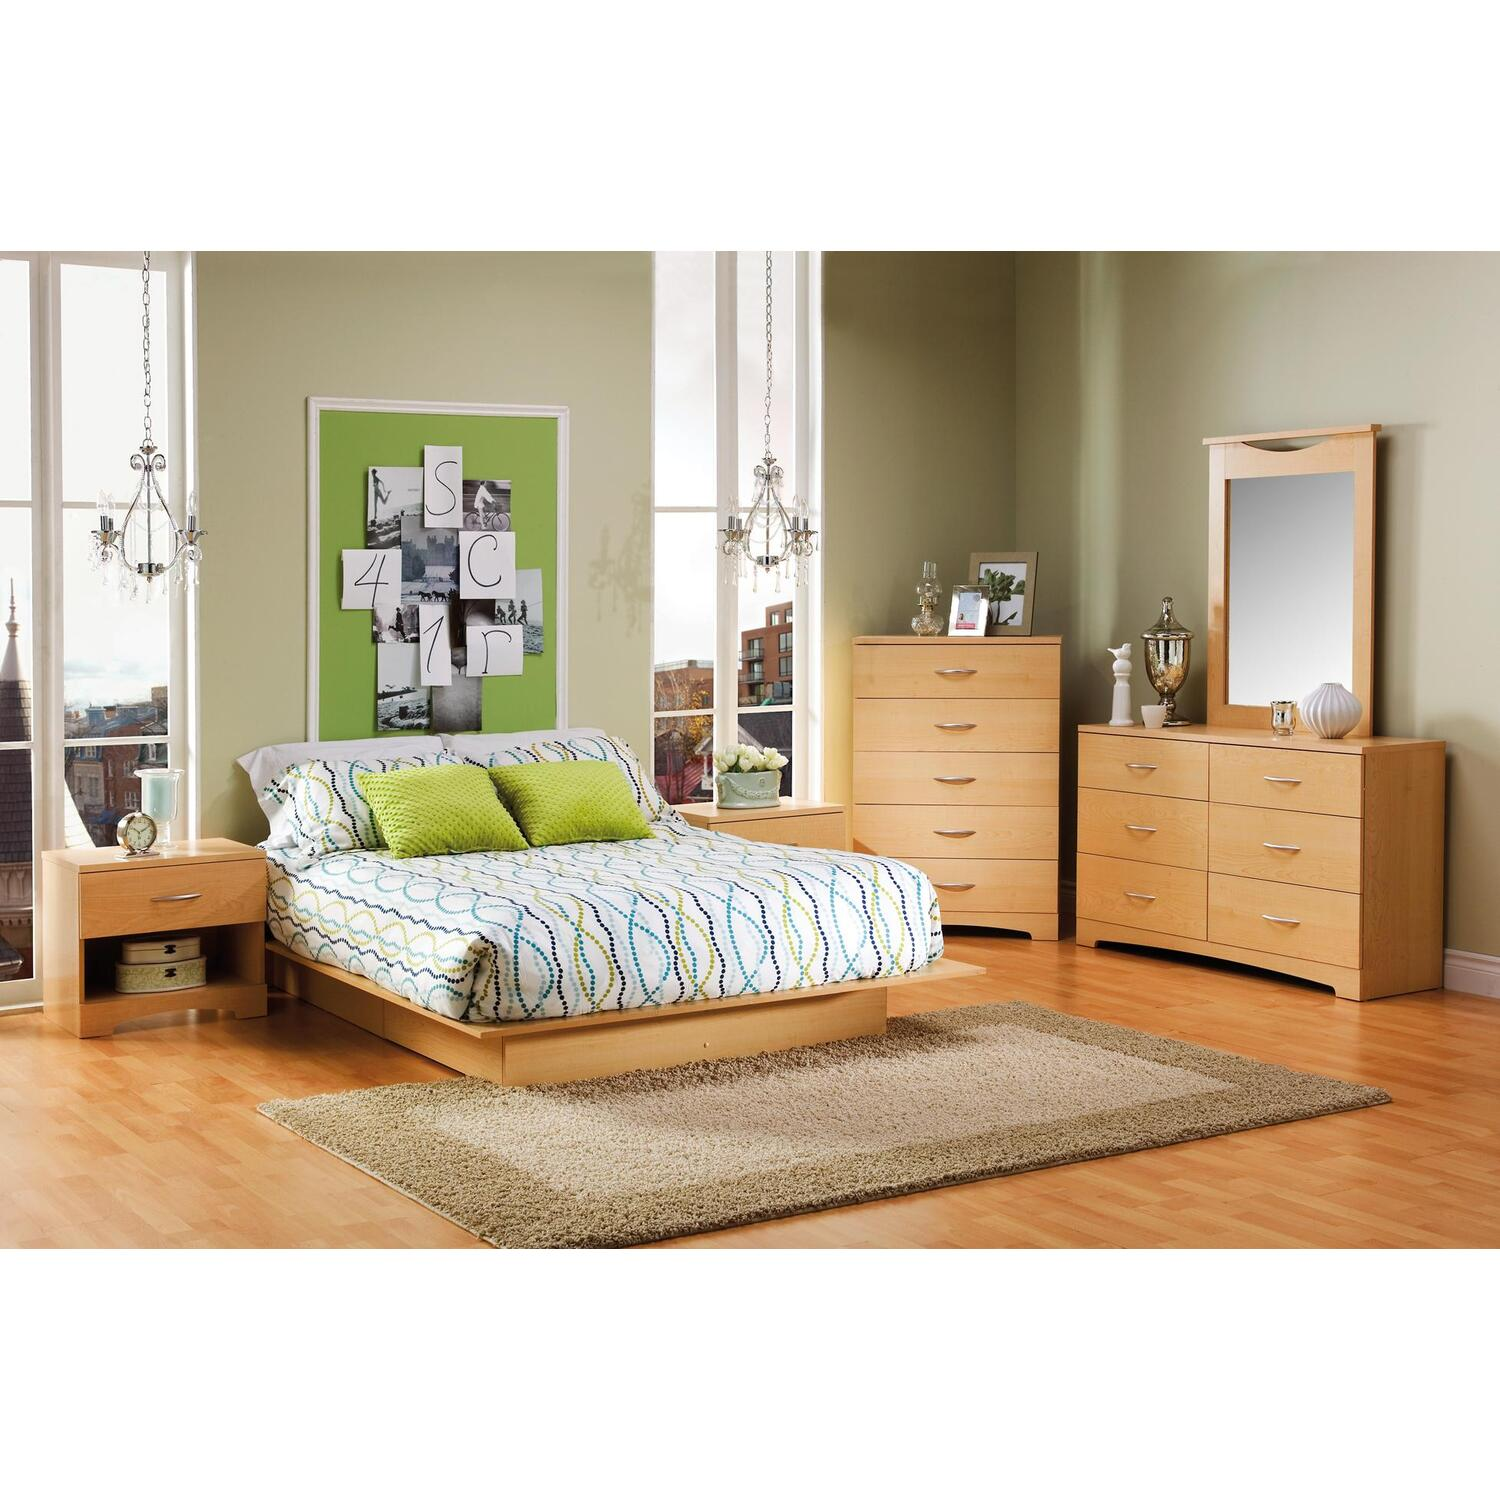 Copley full queen platform bed 7 piece bedroom set 1409 7 piece queen bedroom furniture sets